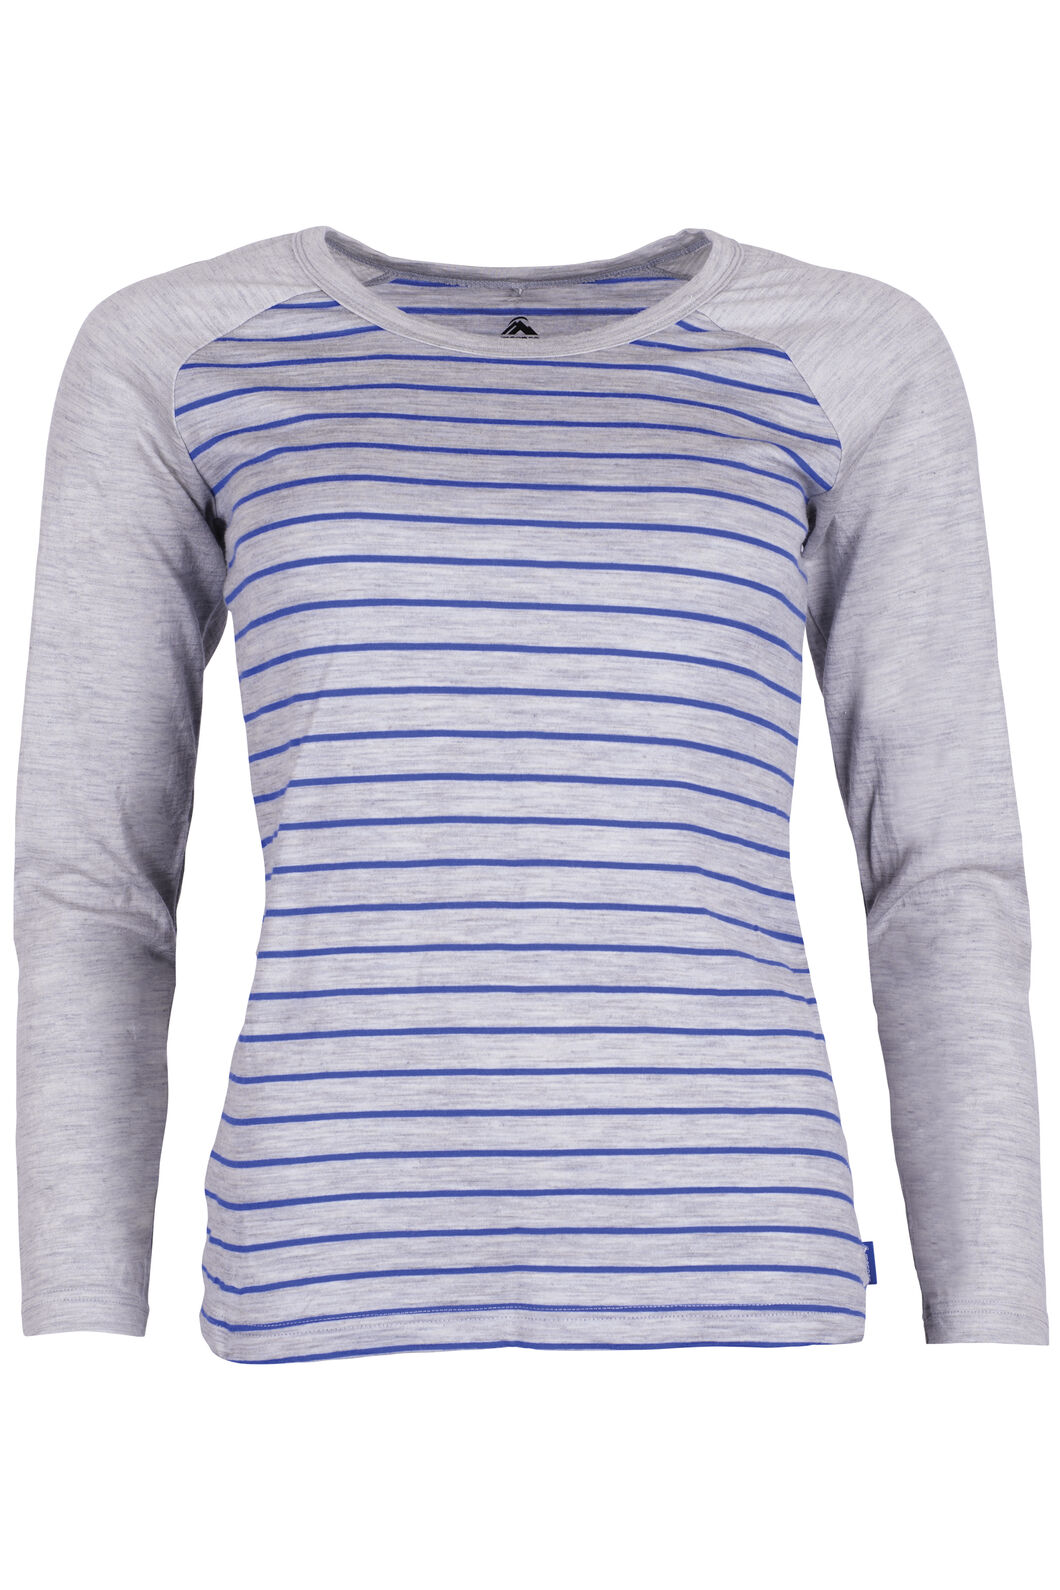 Macpac Victoria 180 Scoop Top Womens, Dazzling Stripe/L. Grey Marle, hi-res